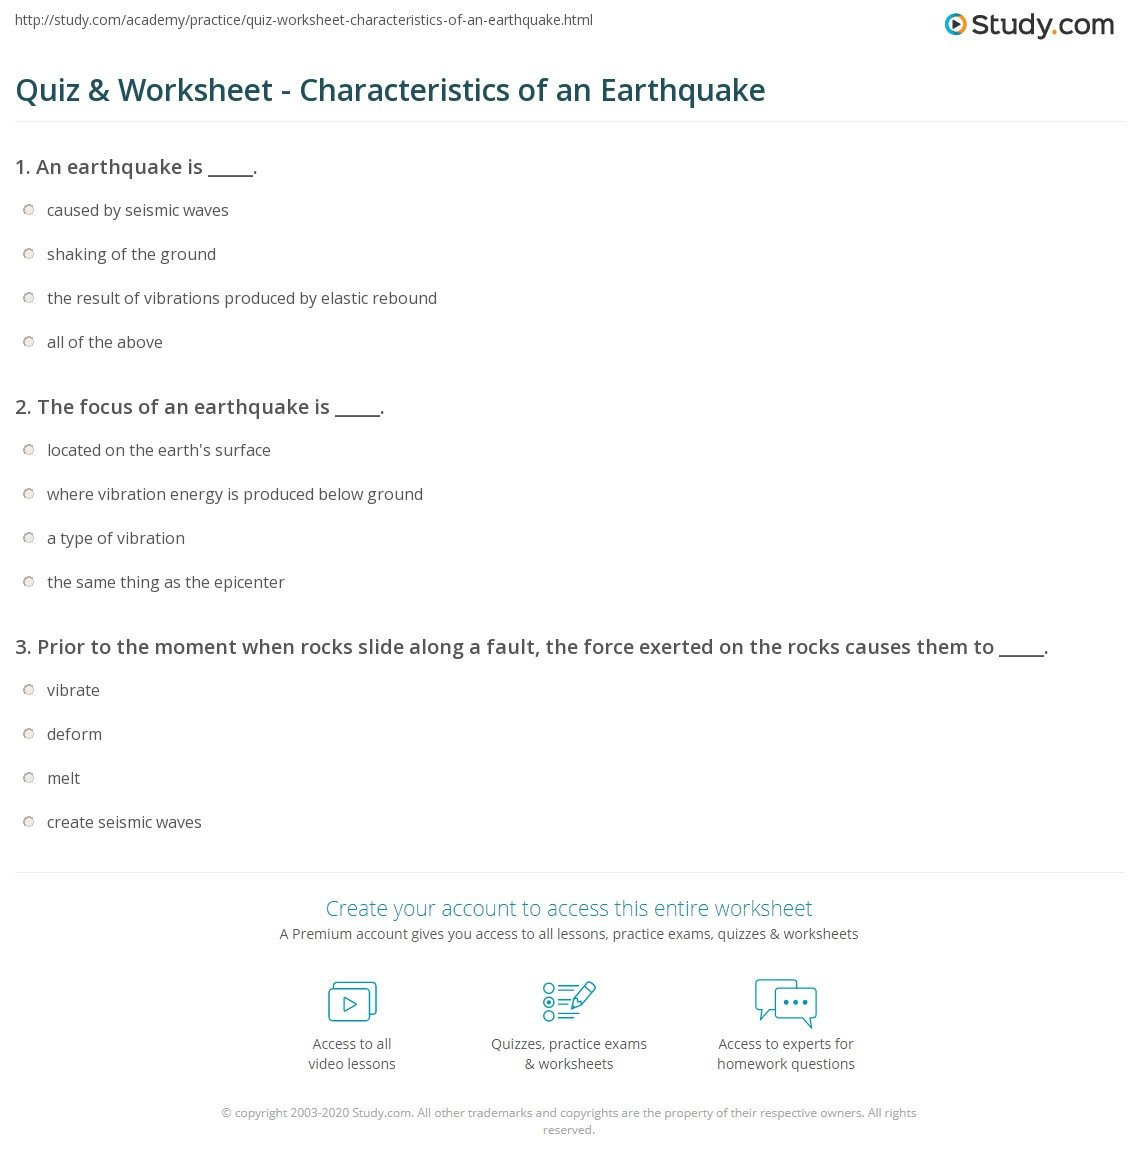 quiz worksheet characteristics of an earthquake